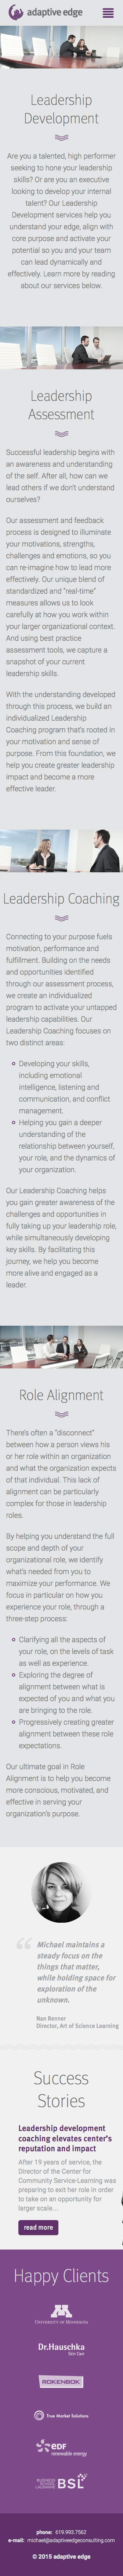 ignyte web design agency responsive leadership